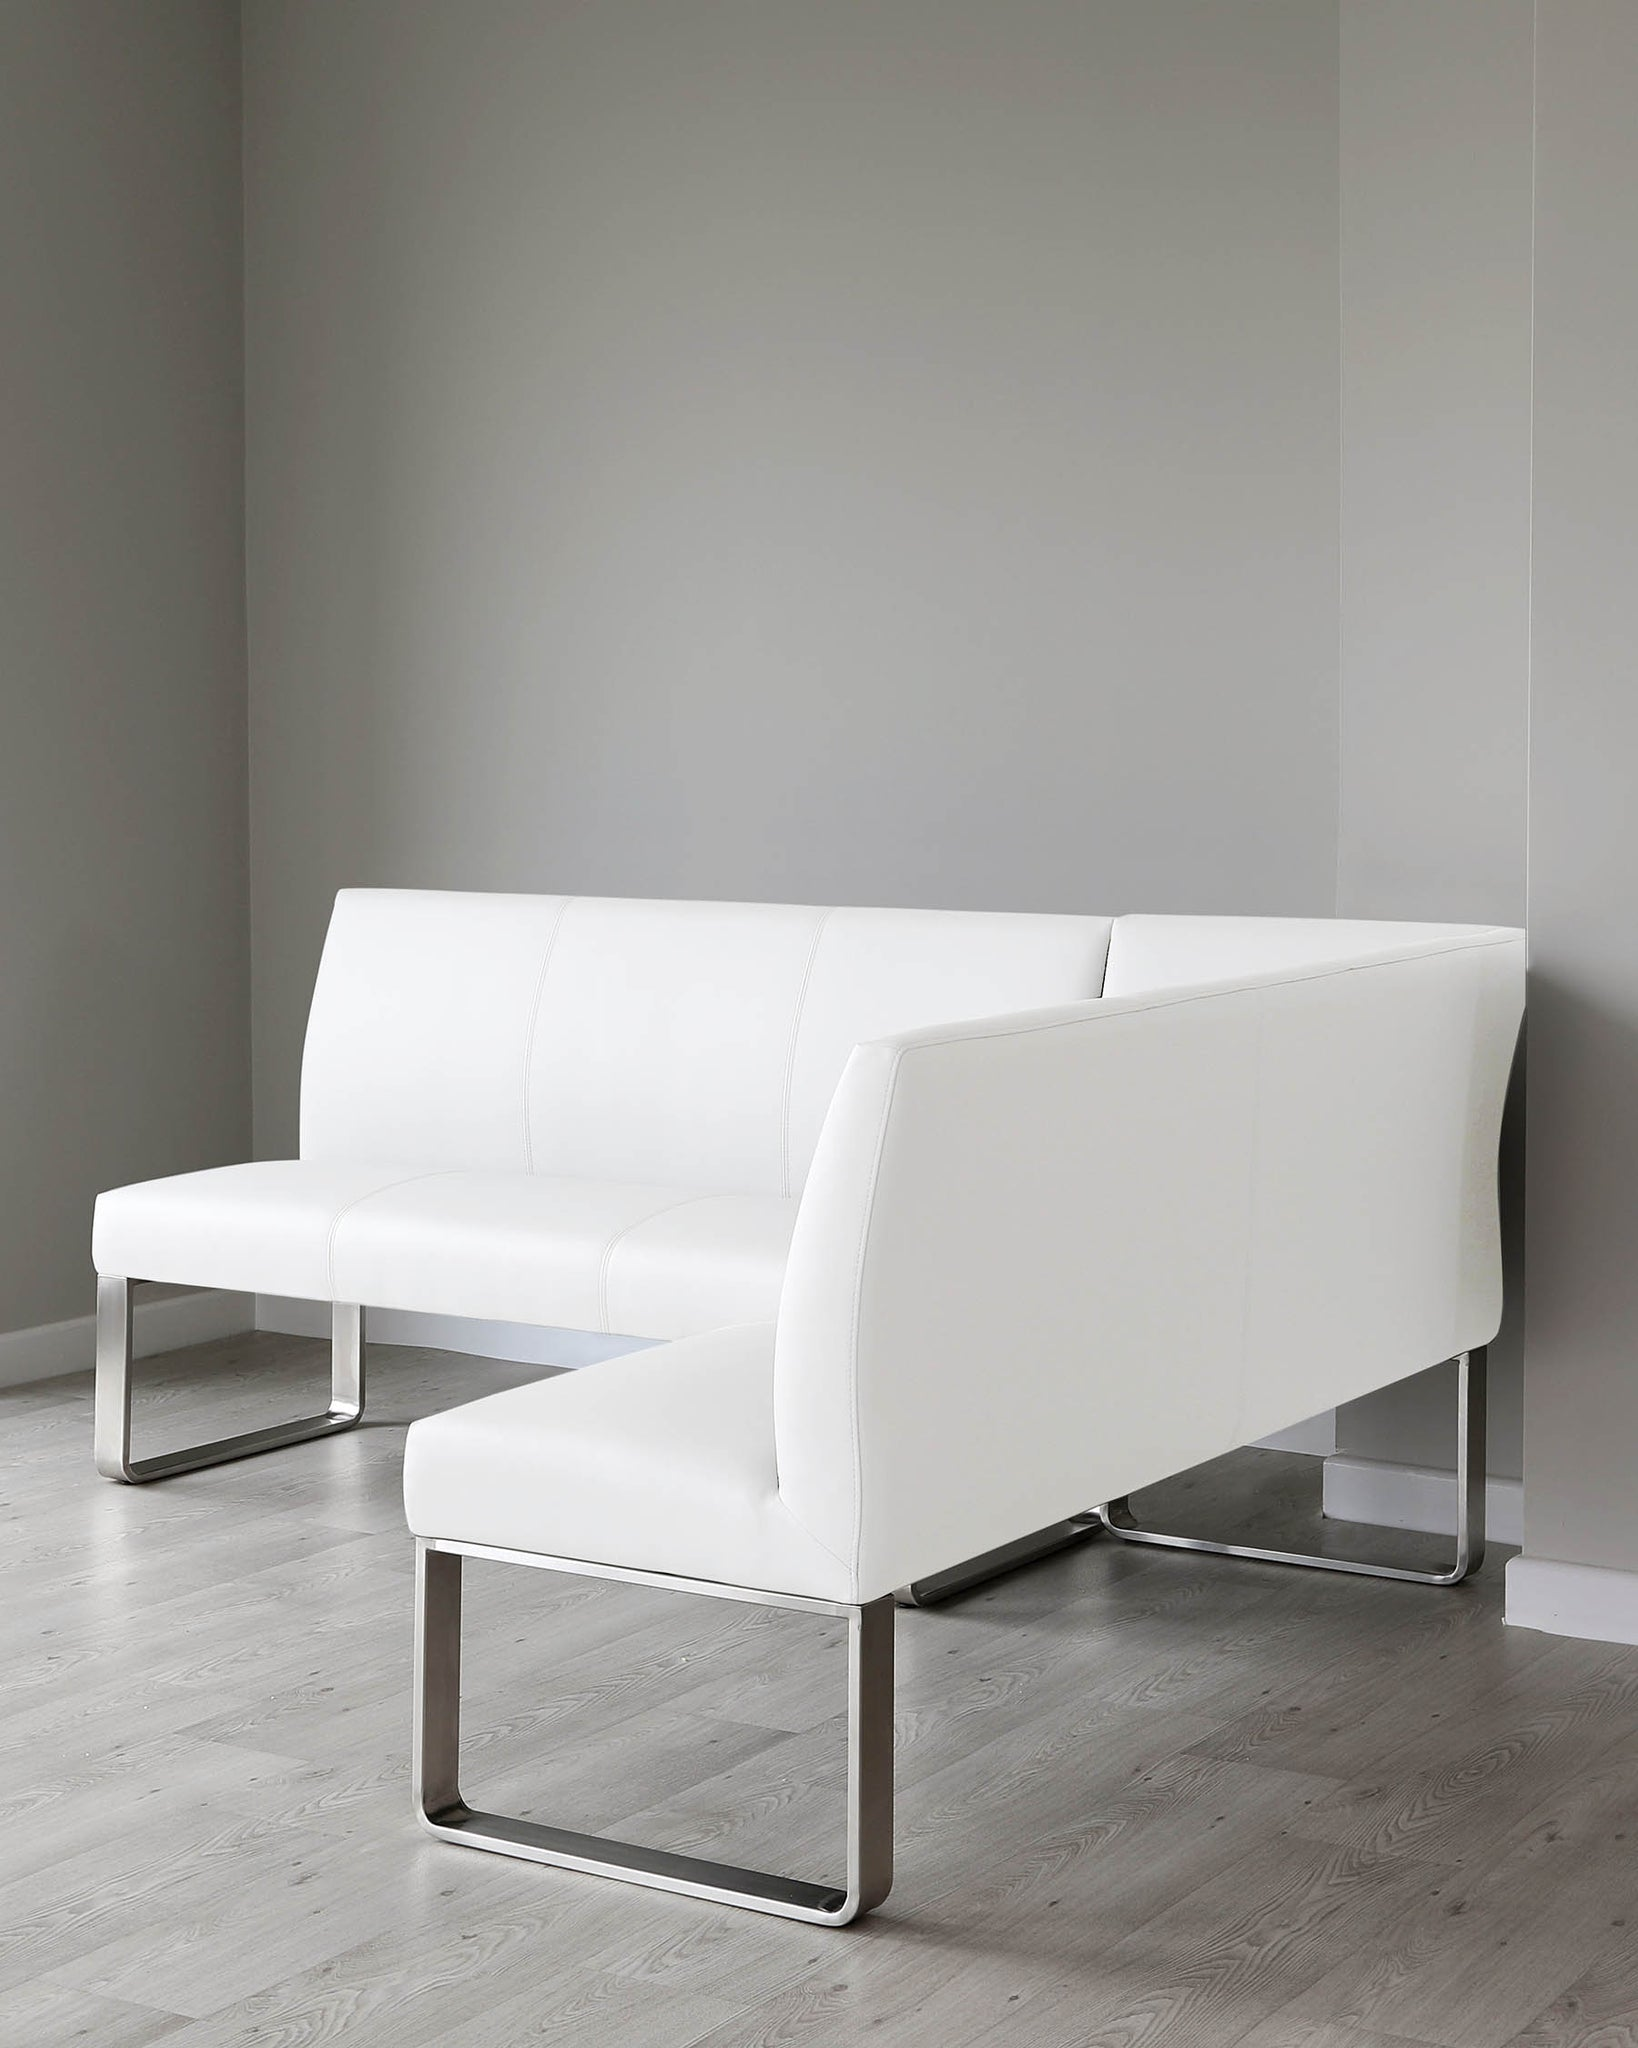 Loop 5 Seater White Faux Leather & Stainless Steel Left Hand Corner Bench